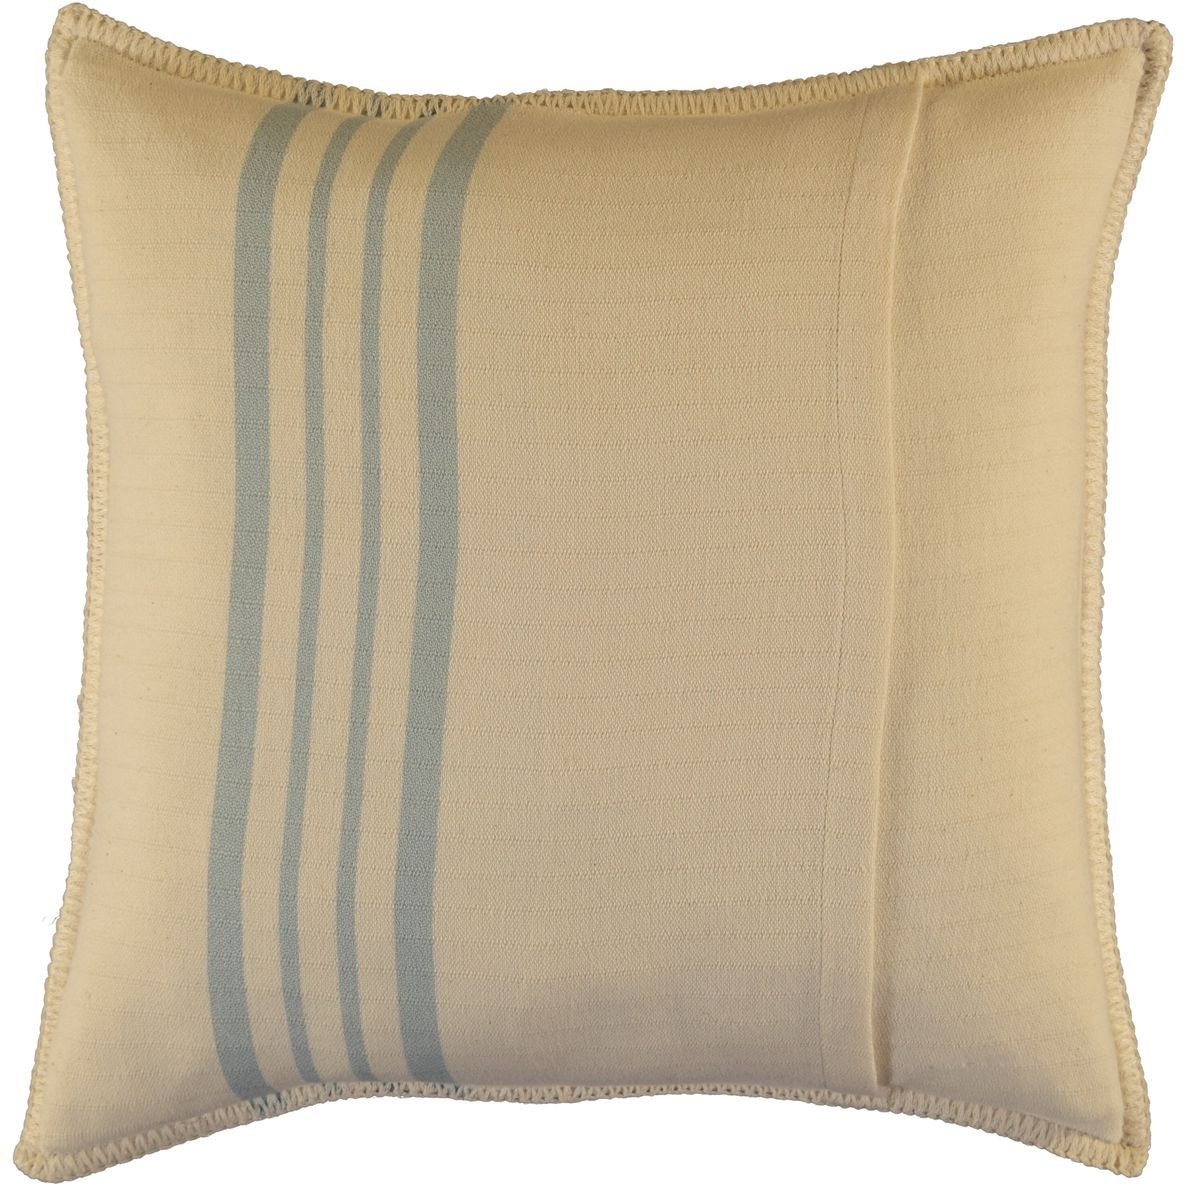 Cushion Cover Sultan - Light Blue / 45x45